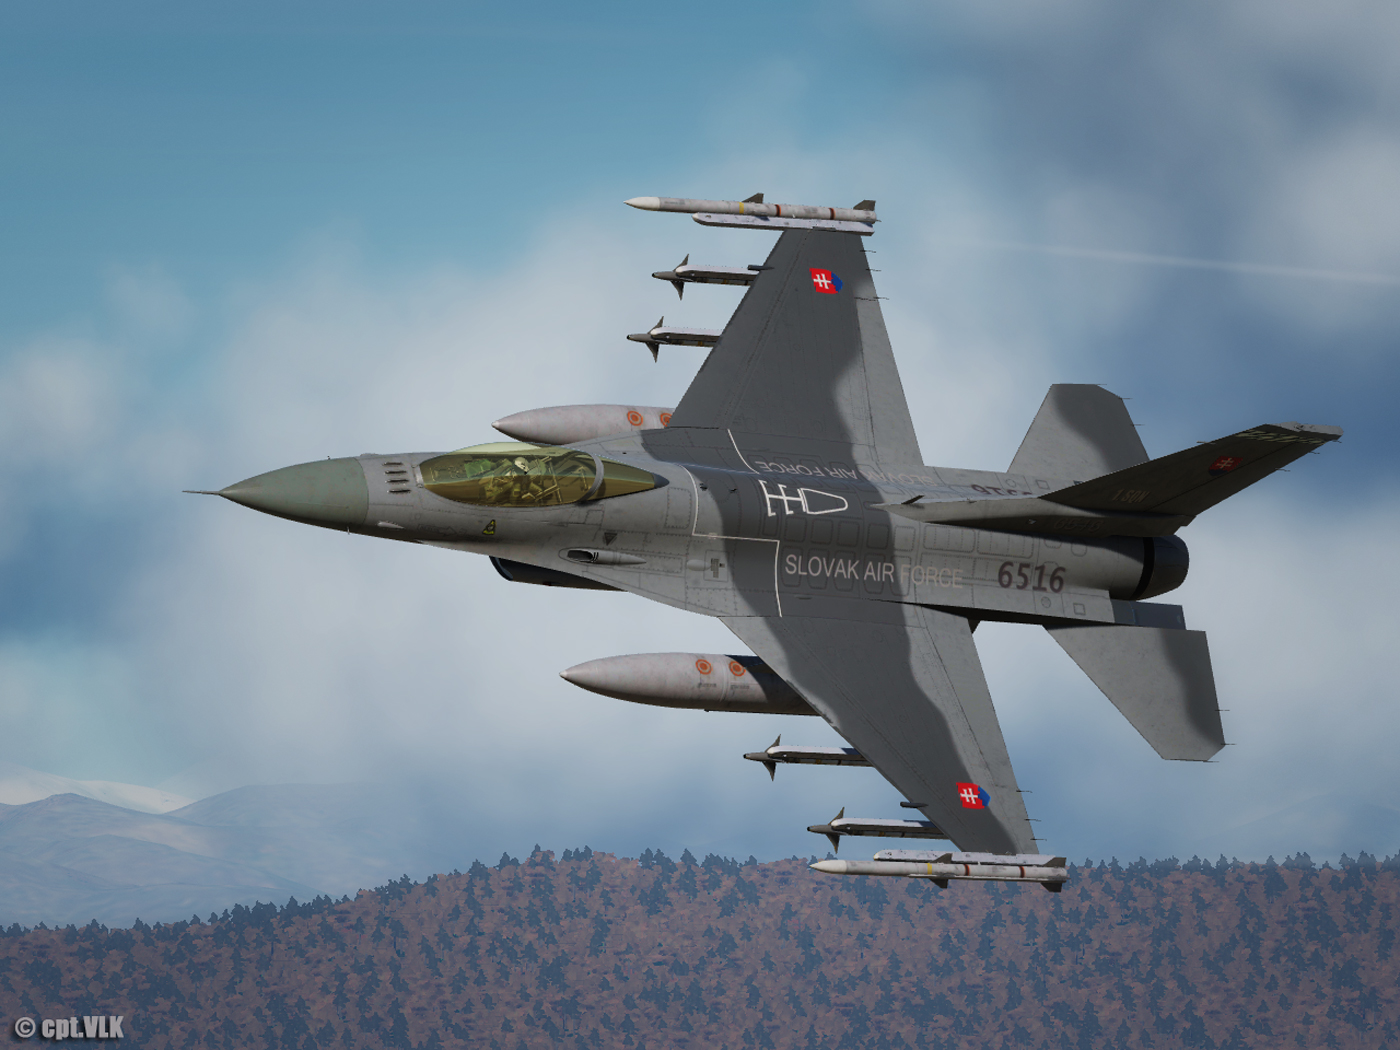 F-16C Slovak Air Force camouflage 6516